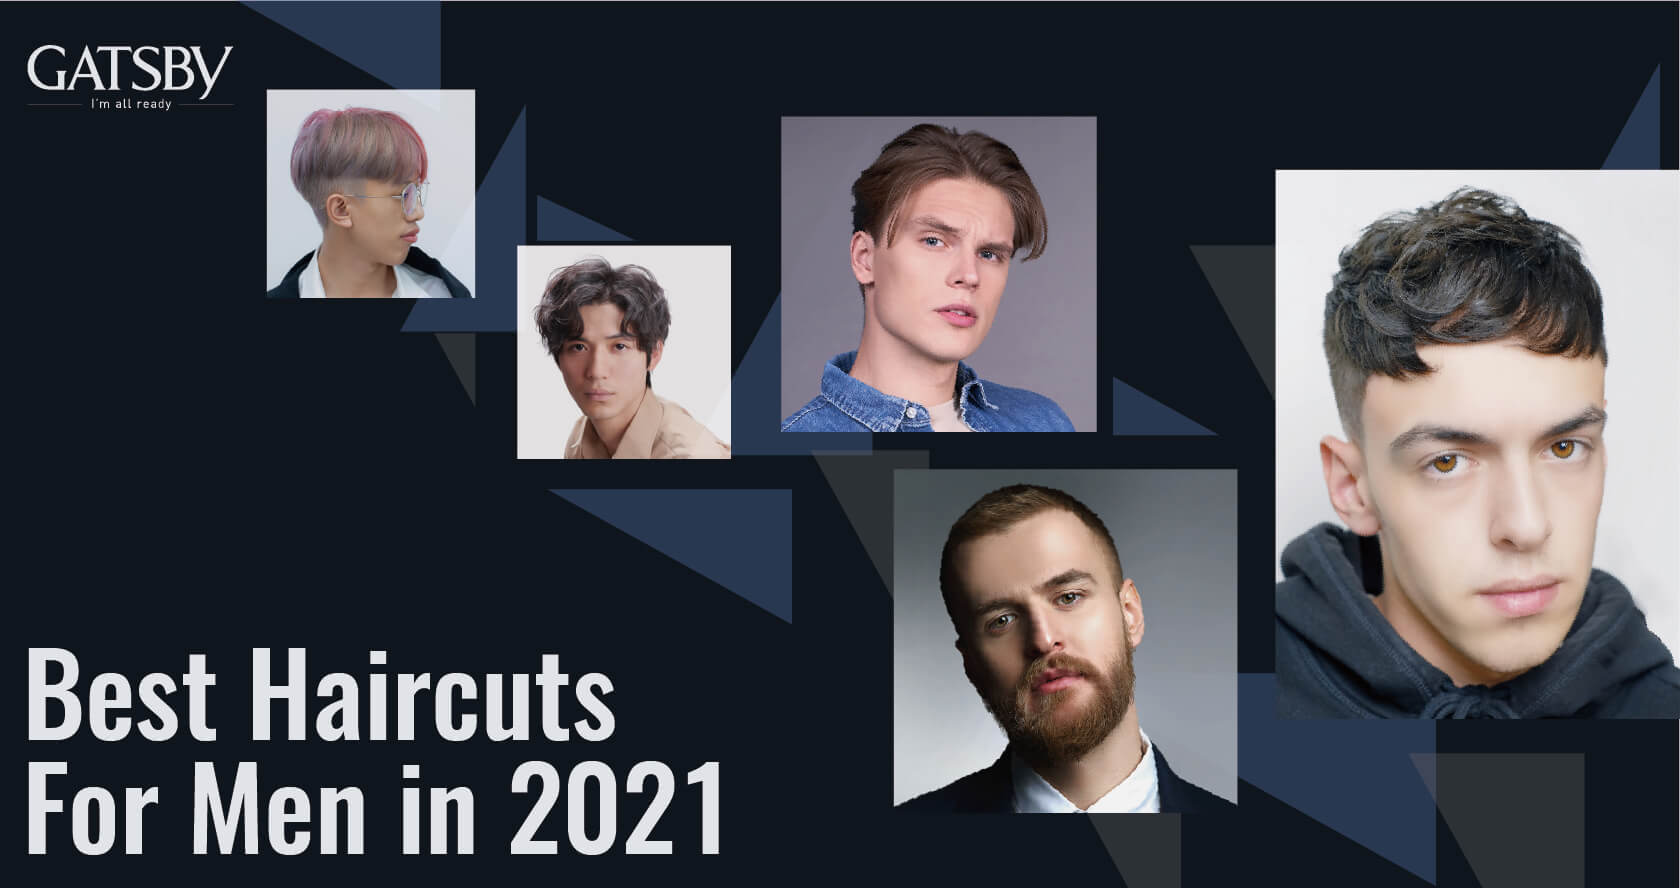 63 Best Haircuts For Men in 2021 — Top Men's Hairstyles Today by GATSBY